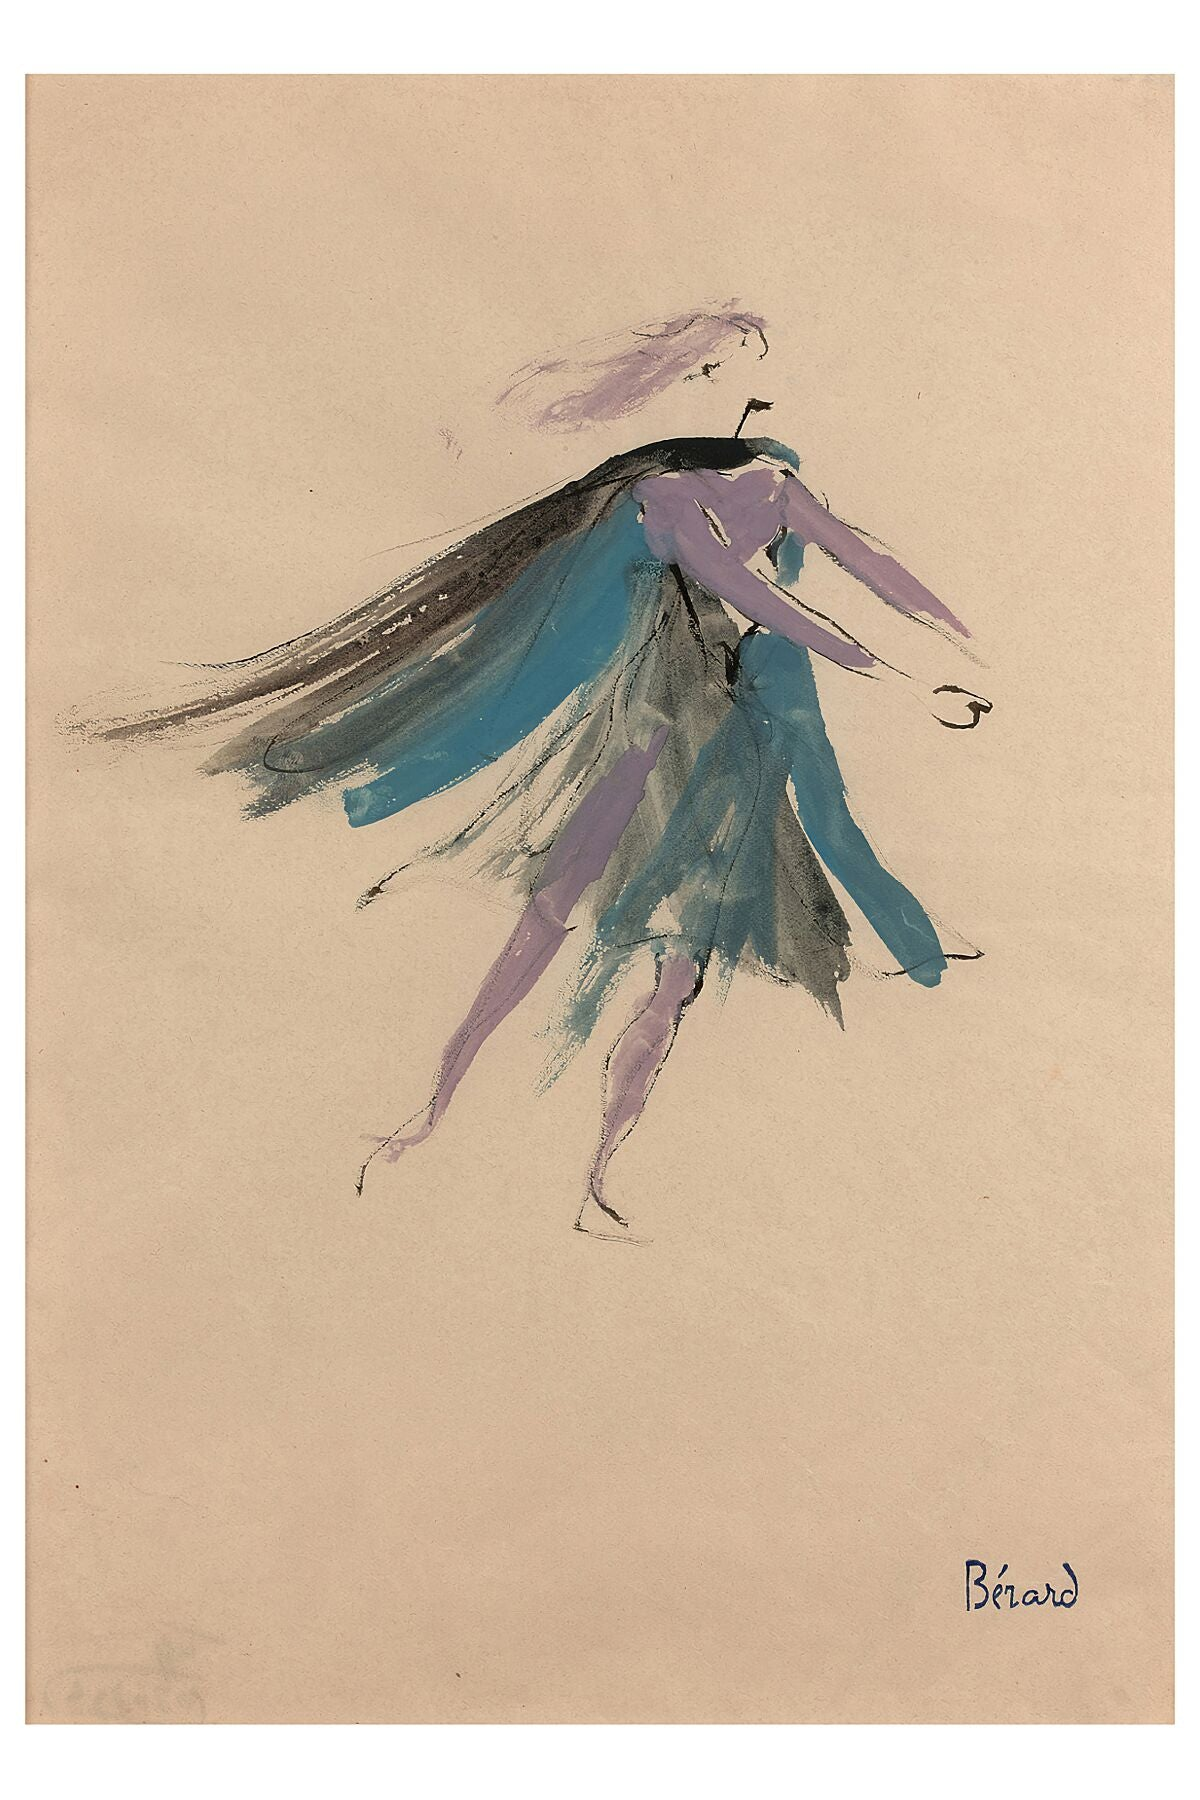 Theater Costumes Project by Christian Bérard (1902-1949)